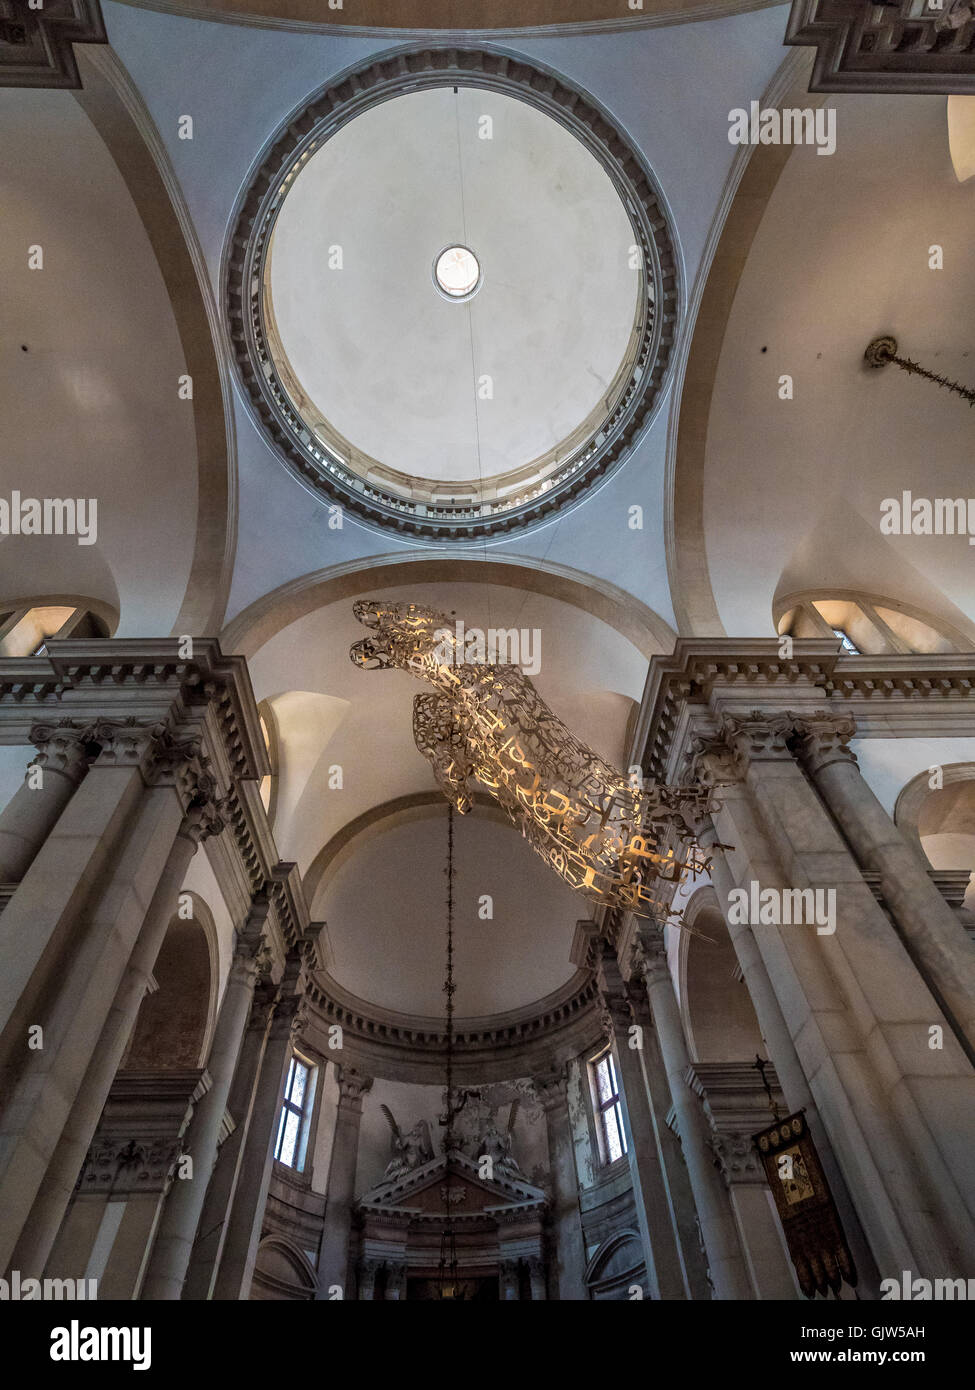 The blessing hand 'Together' by Jaume Plensa, Metal sculpture suspended above the  transept, below the ceiling - Stock Image